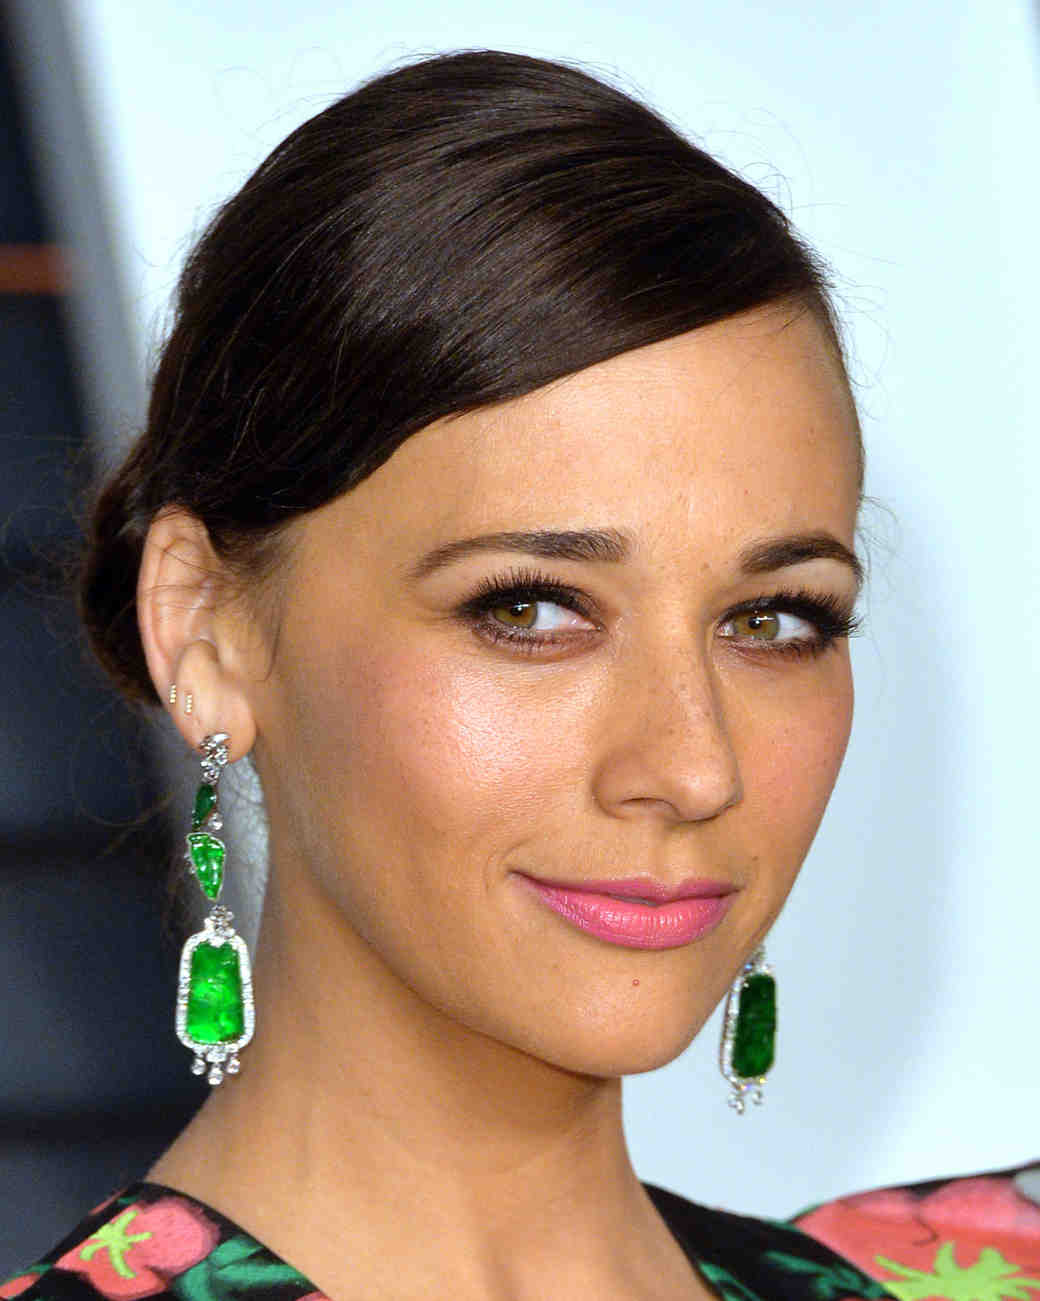 celebrity-wedding-makeup-rashidajones-0915.jpg